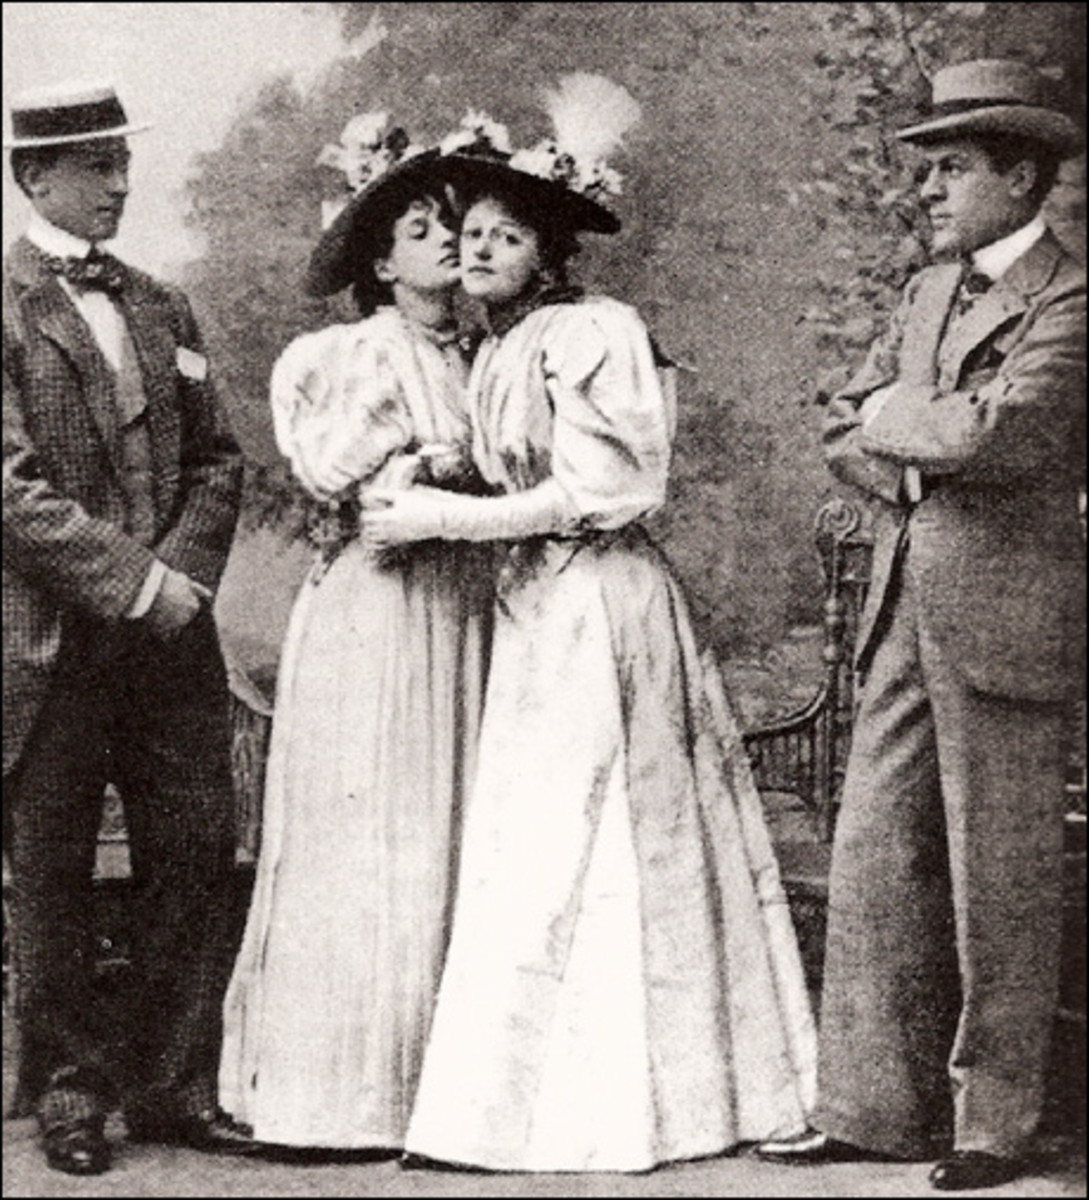 the 1895 London premier of The Importance of Being Earnest